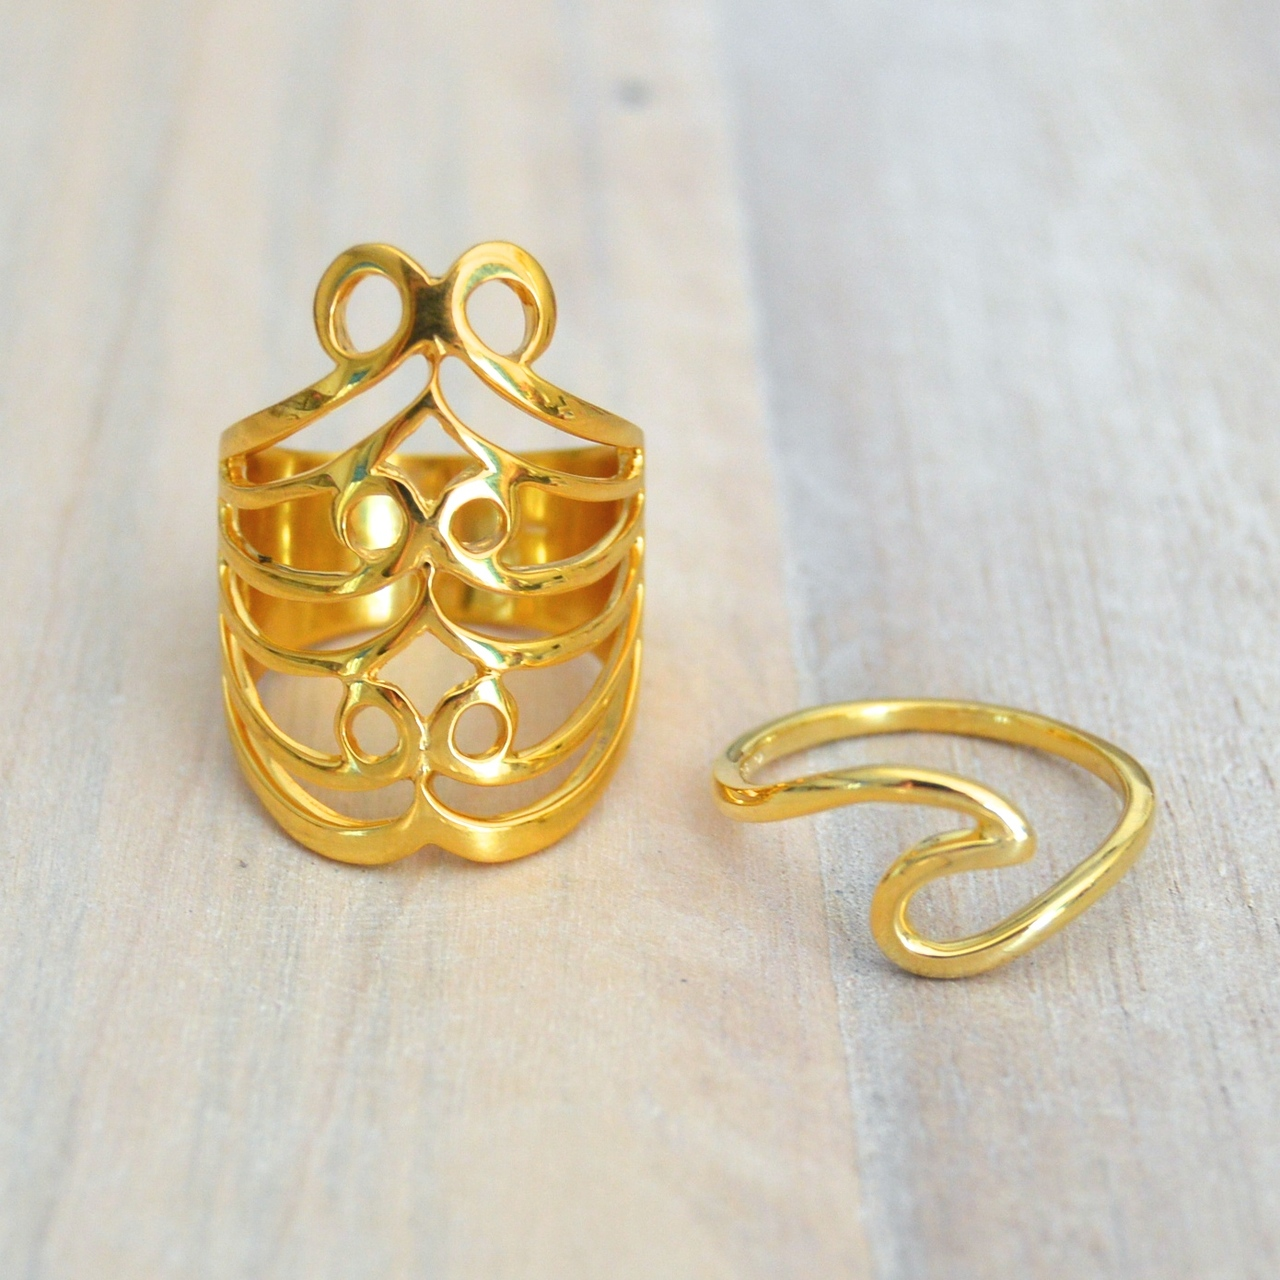 Smooth Wave Knuckle Ring in Gold